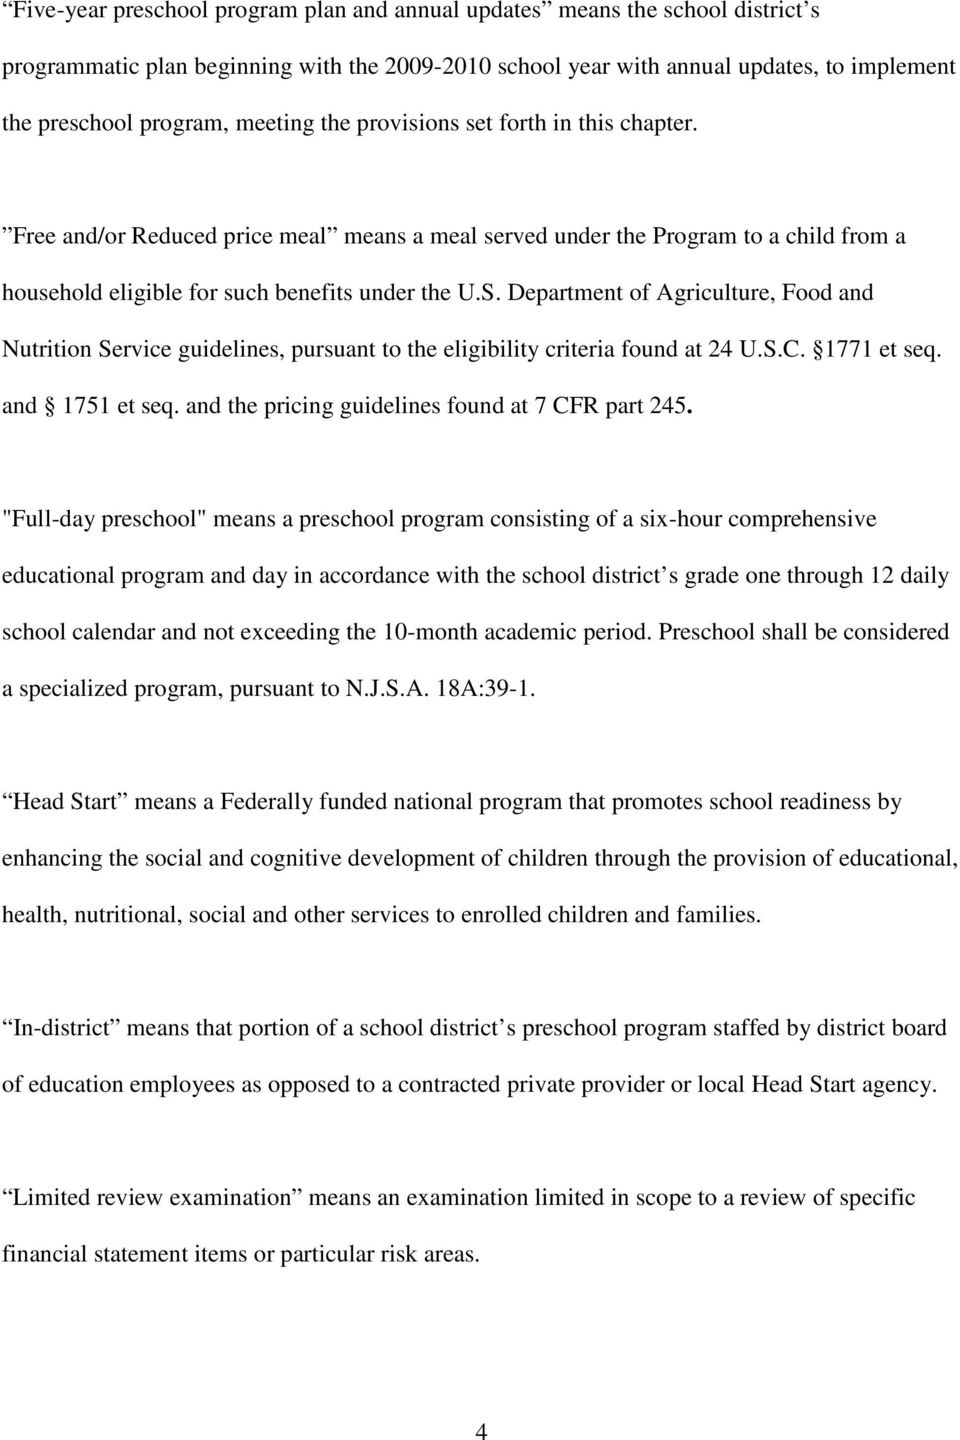 Department of Agriculture, Food and Nutrition Service guidelines, pursuant to the eligibility criteria found at 24 U.S.C. 1771 et seq. and 1751 et seq.